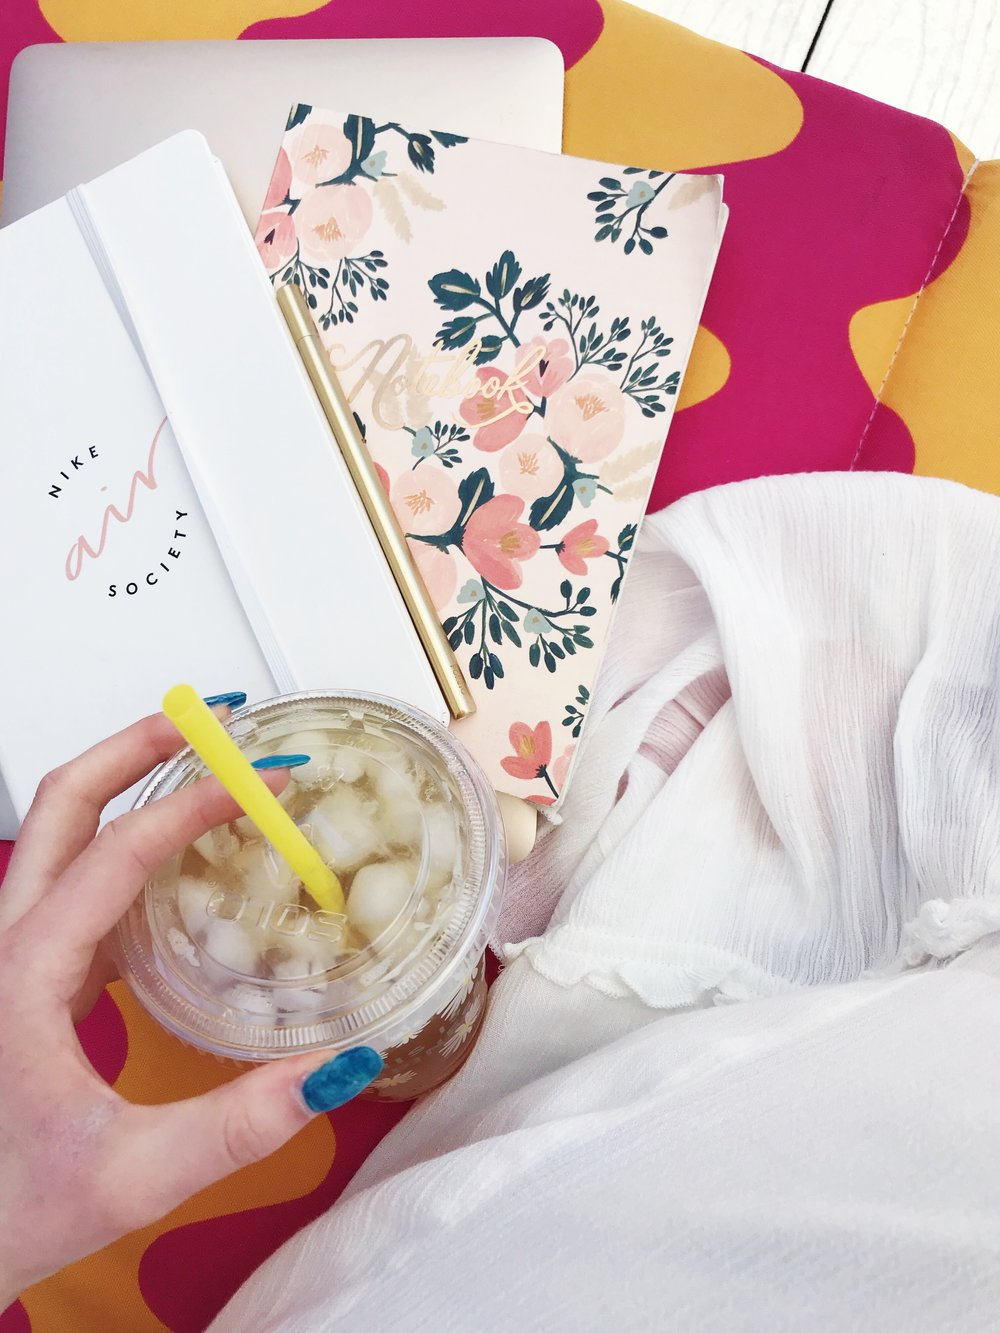 journaling-tips-to-calm-down.JPG